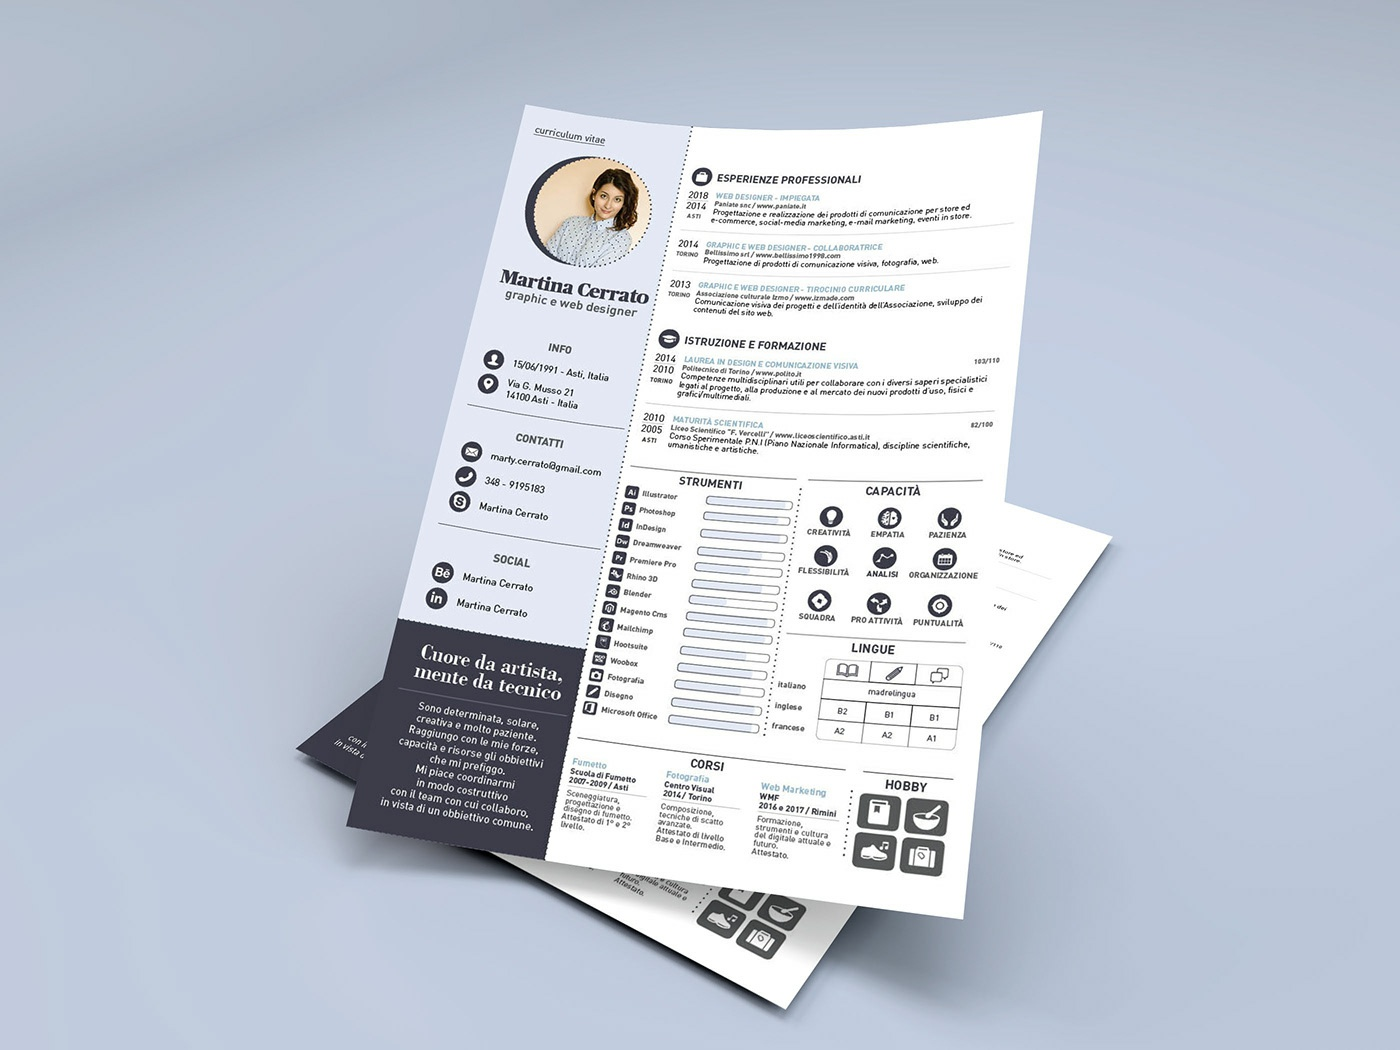 Free Infographic Resume Template Made With Adobe Indesign Re Design